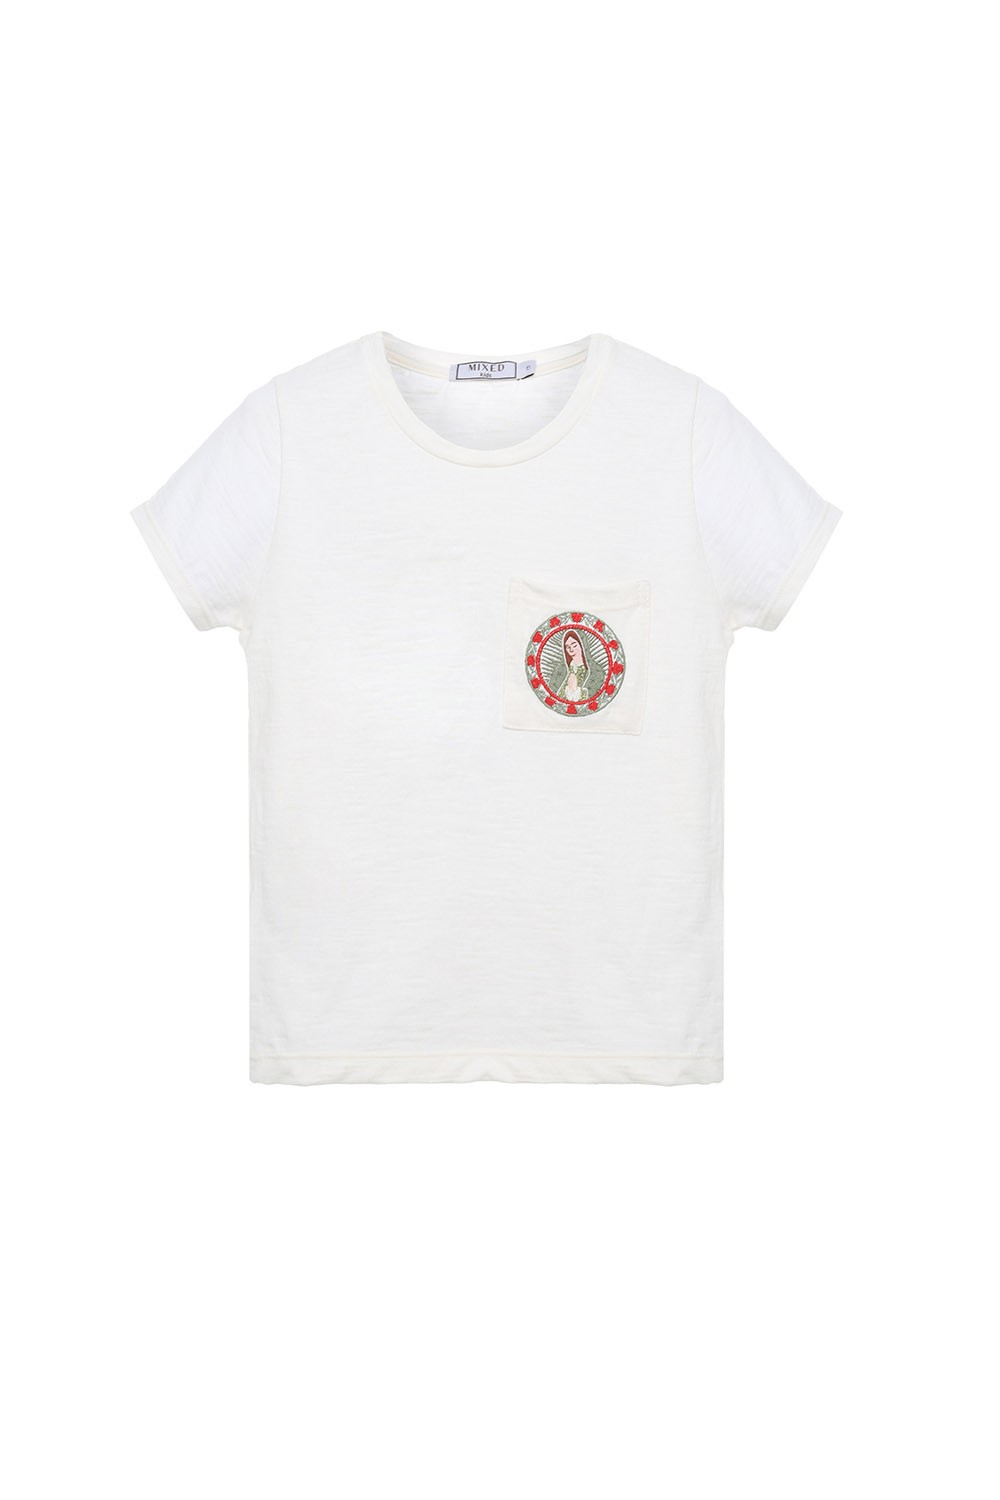 CAMISETA GUADALUPE POCKET KIDS I21